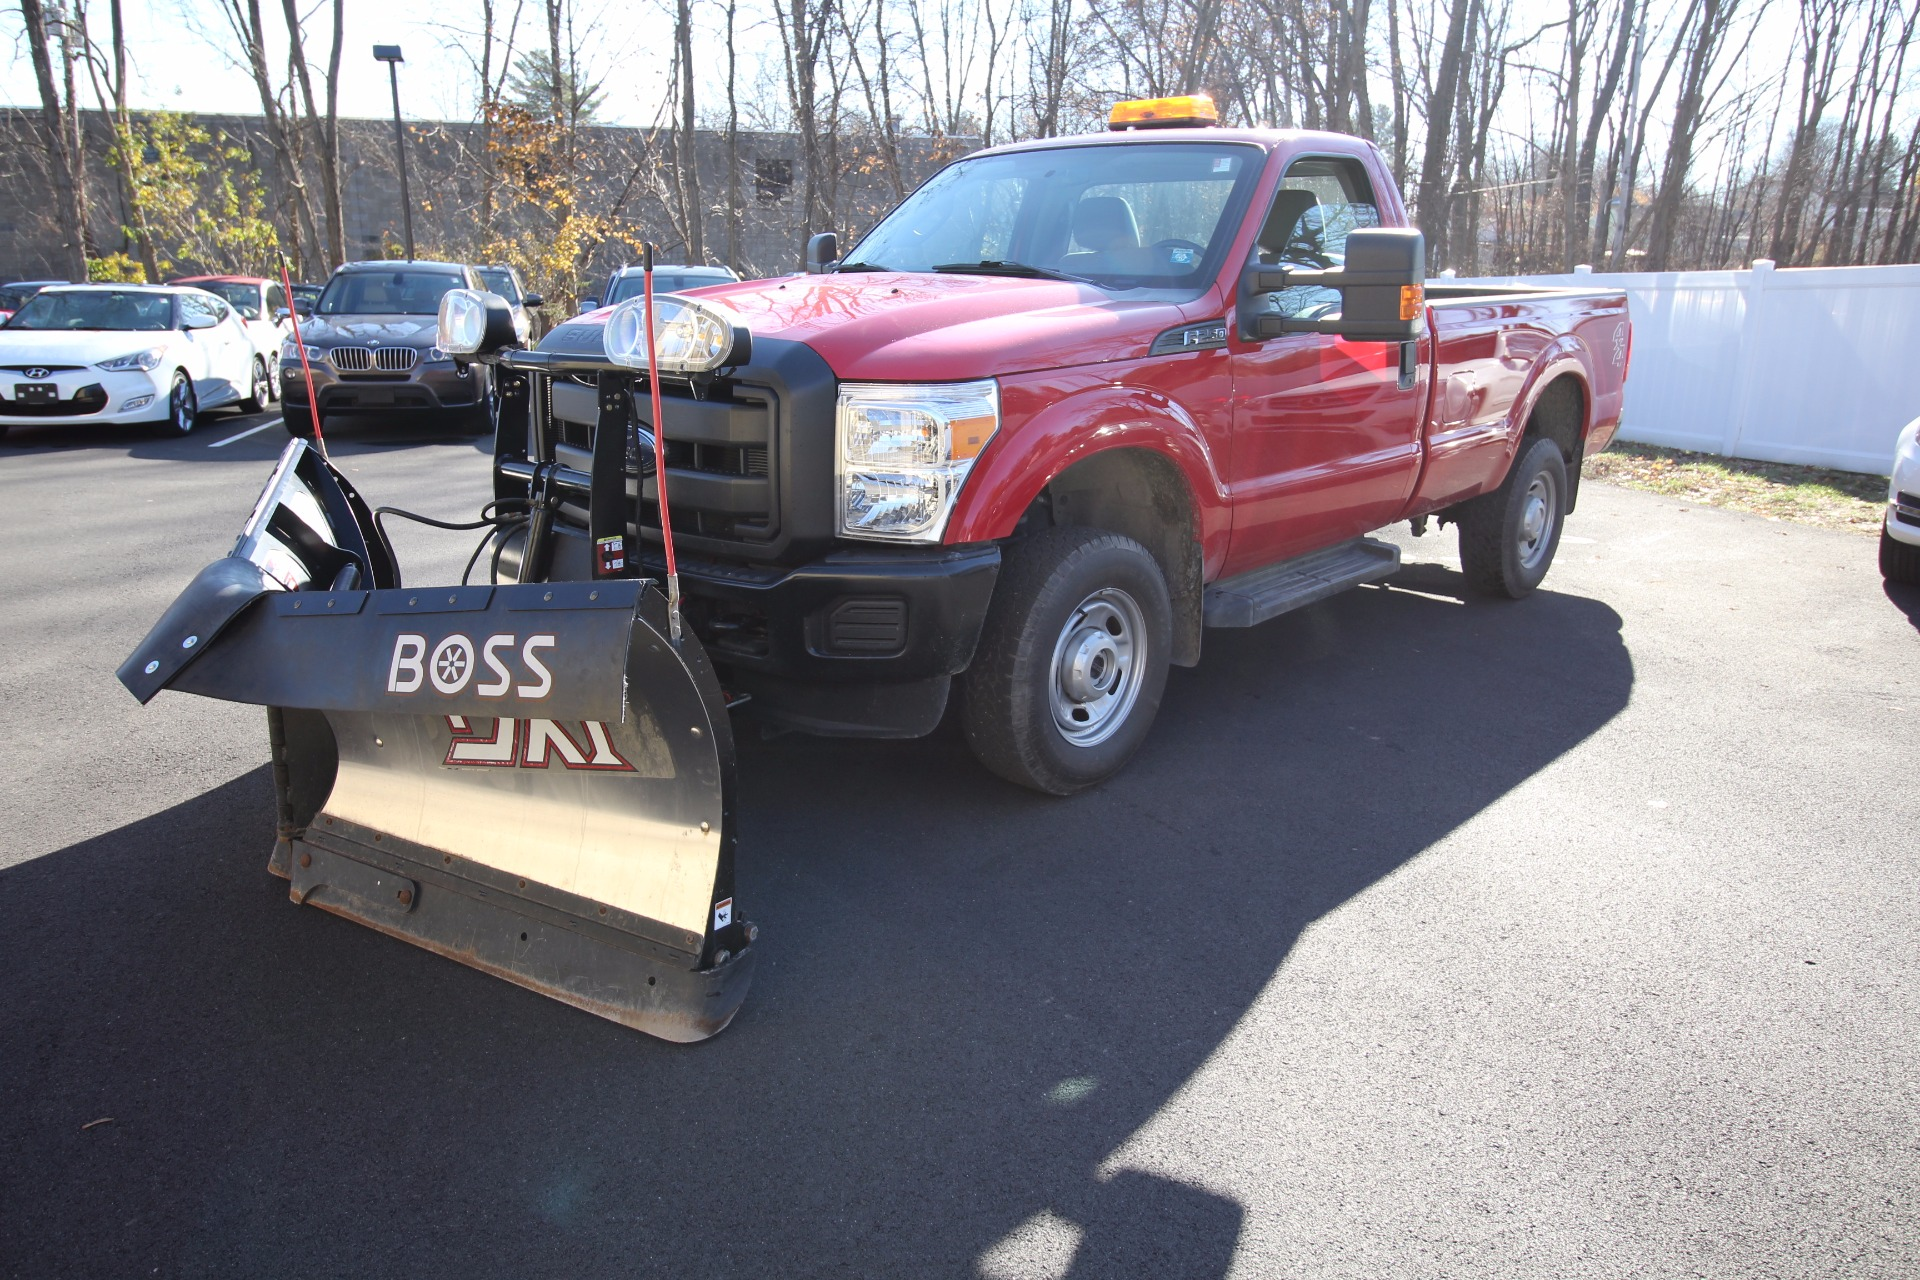 Used F 250 Super Duty For Sale >> 2015 Ford F-250 SD XL 4WD Stock # 16313 for sale near Albany, NY | NY Ford Dealer For Sale in ...